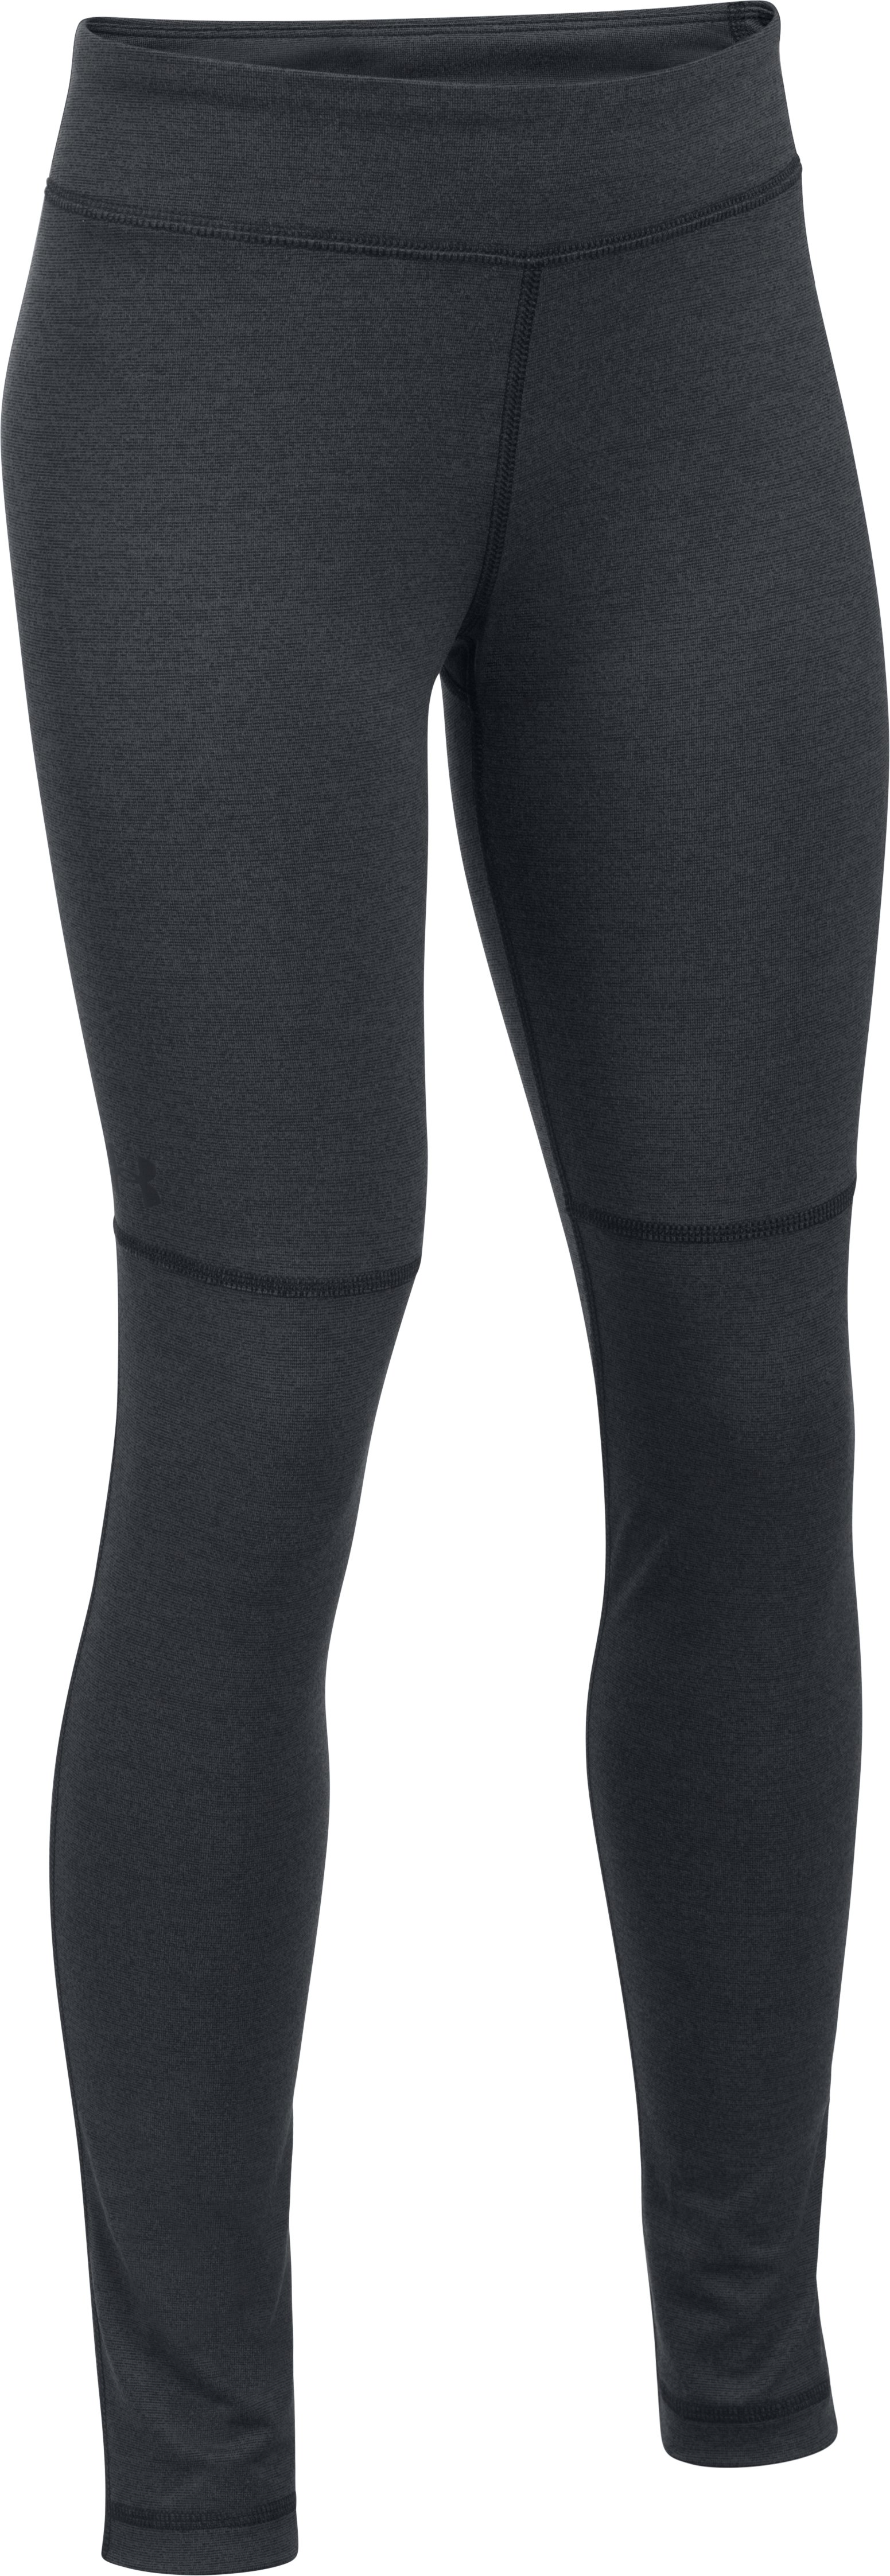 Girls' UA Elevated Training Plush Leggings, Black